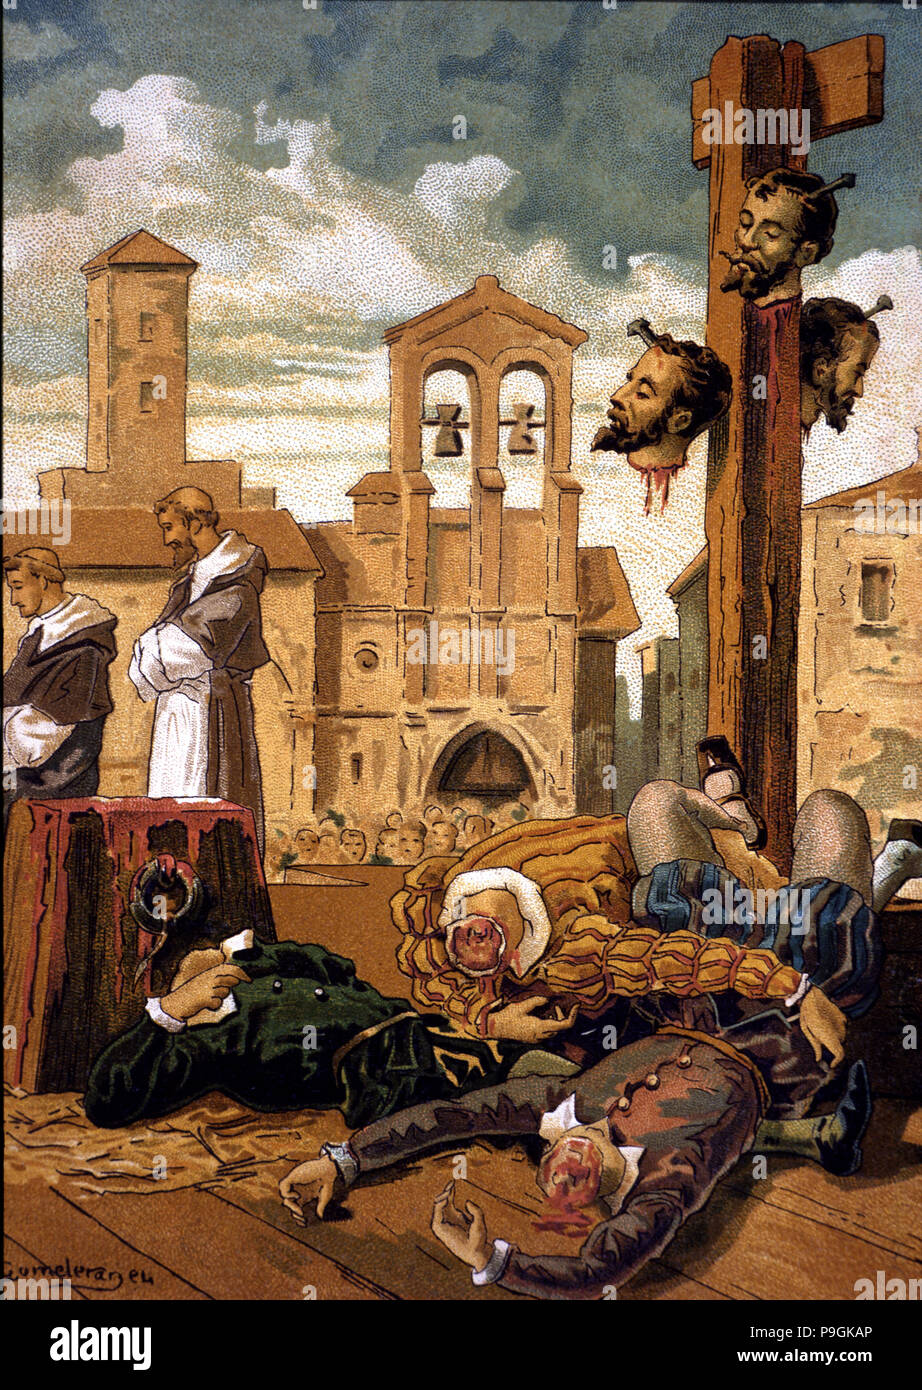 Execution in Villalar in 1521 of the three Comuneros leaders: Juan de  Padilla, Juan Bravo and Francisco Maldonado accused of treason to King  Charles V